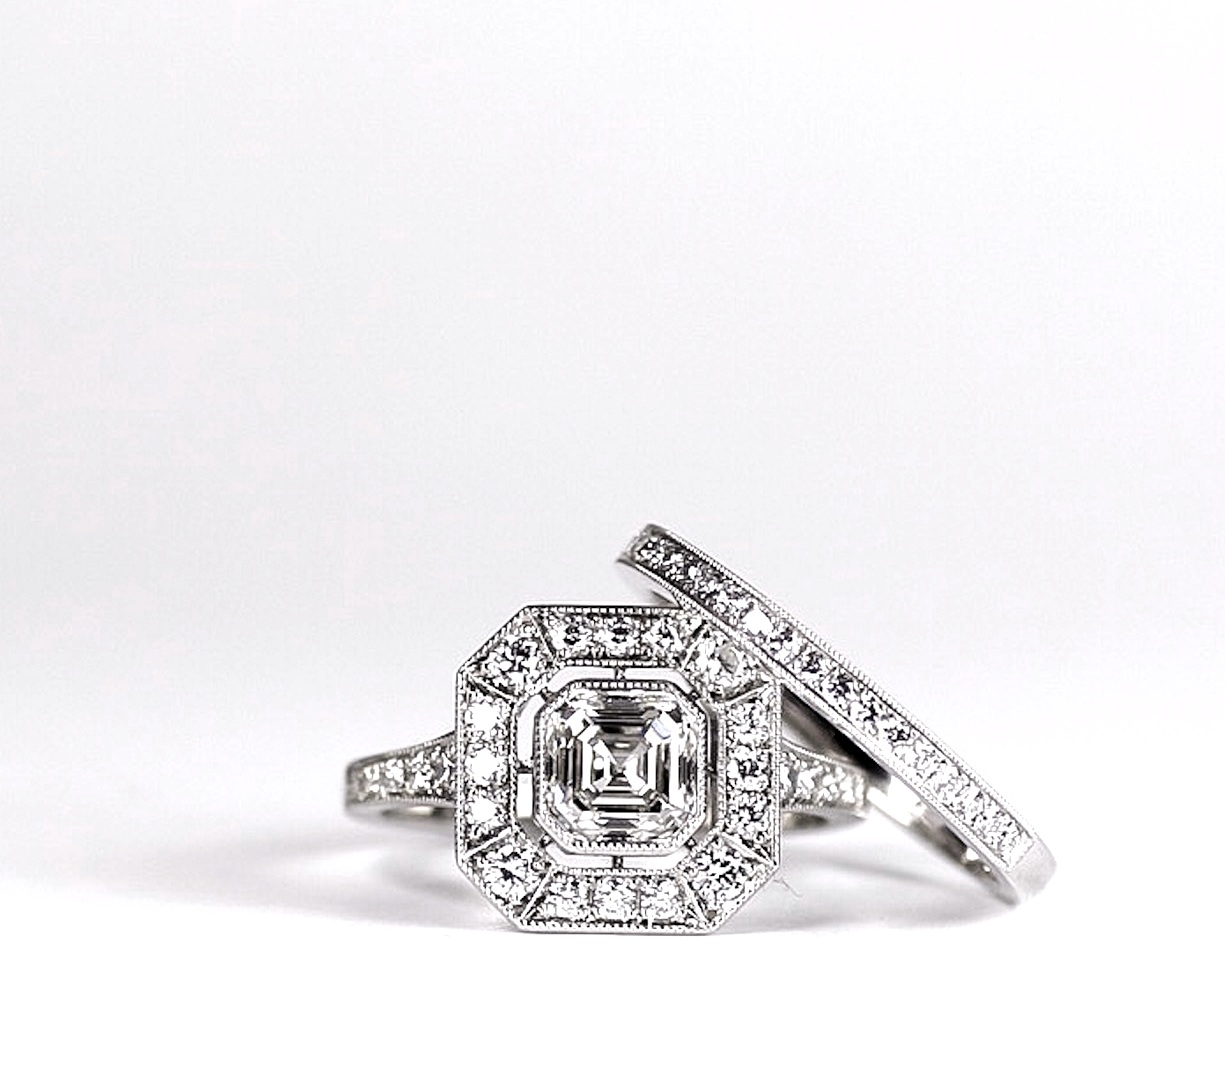 Copy of Asscher cut octagonal 1920's style cluster. Made in Chichester, England.